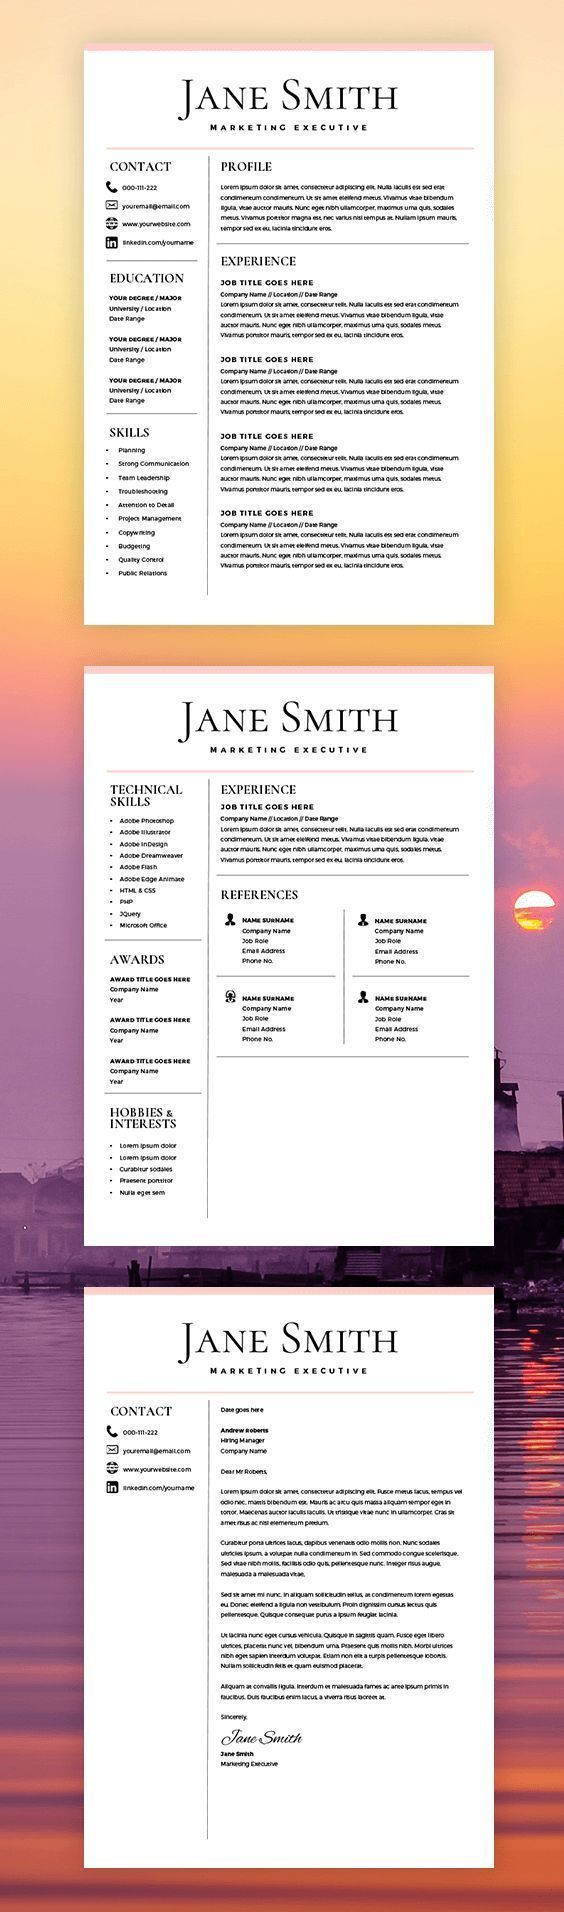 Chronological Resume Samples%0A Resume Template  CV Template  Free Cover Letter  MS Word on Mac   PC